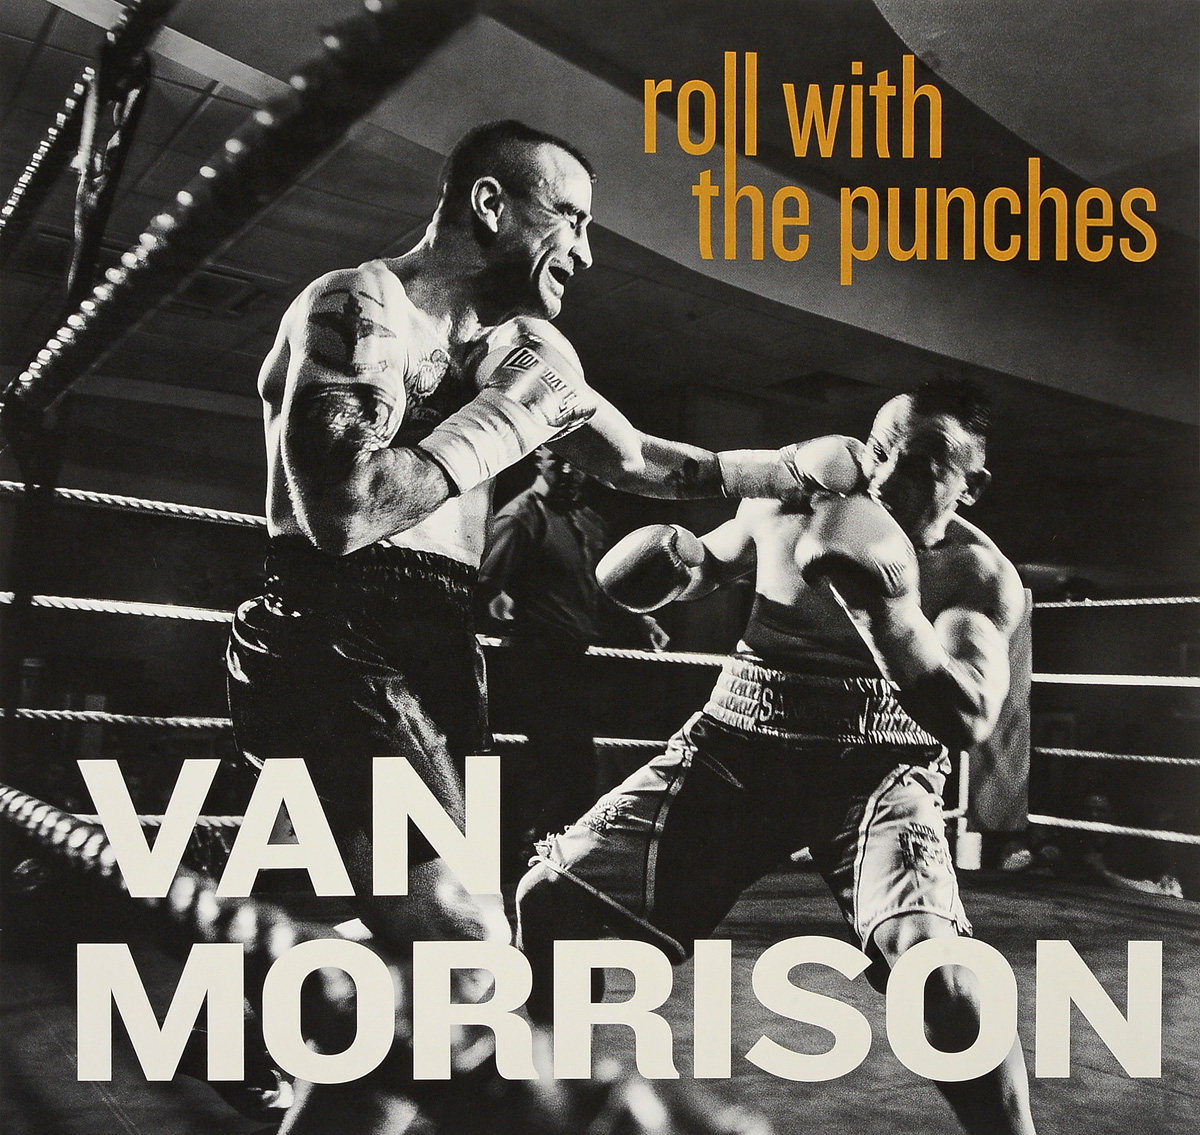 Ван Моррисон Van Morrison. Roll With The Punches (2 LP) jd mcpherson jd mcpherson let the good times roll